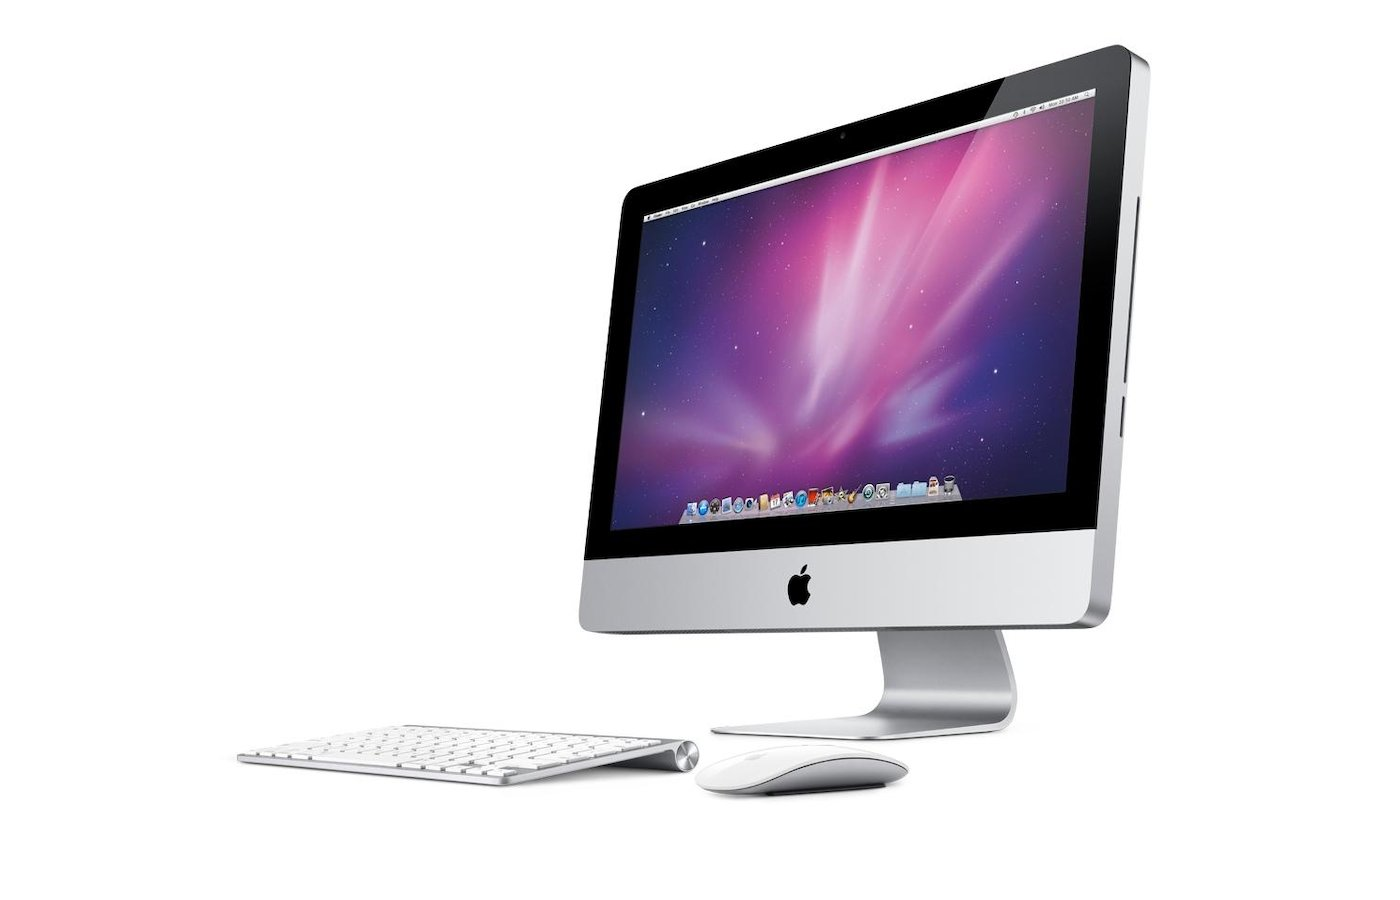 Пк-моноблок apple a1312 imac 27 (mc814rs/a) core i5 31ghz qc/ 4gb/ 1tb/ ati radeon hd6970m 1gb/ sd/ wi-fi/ bt